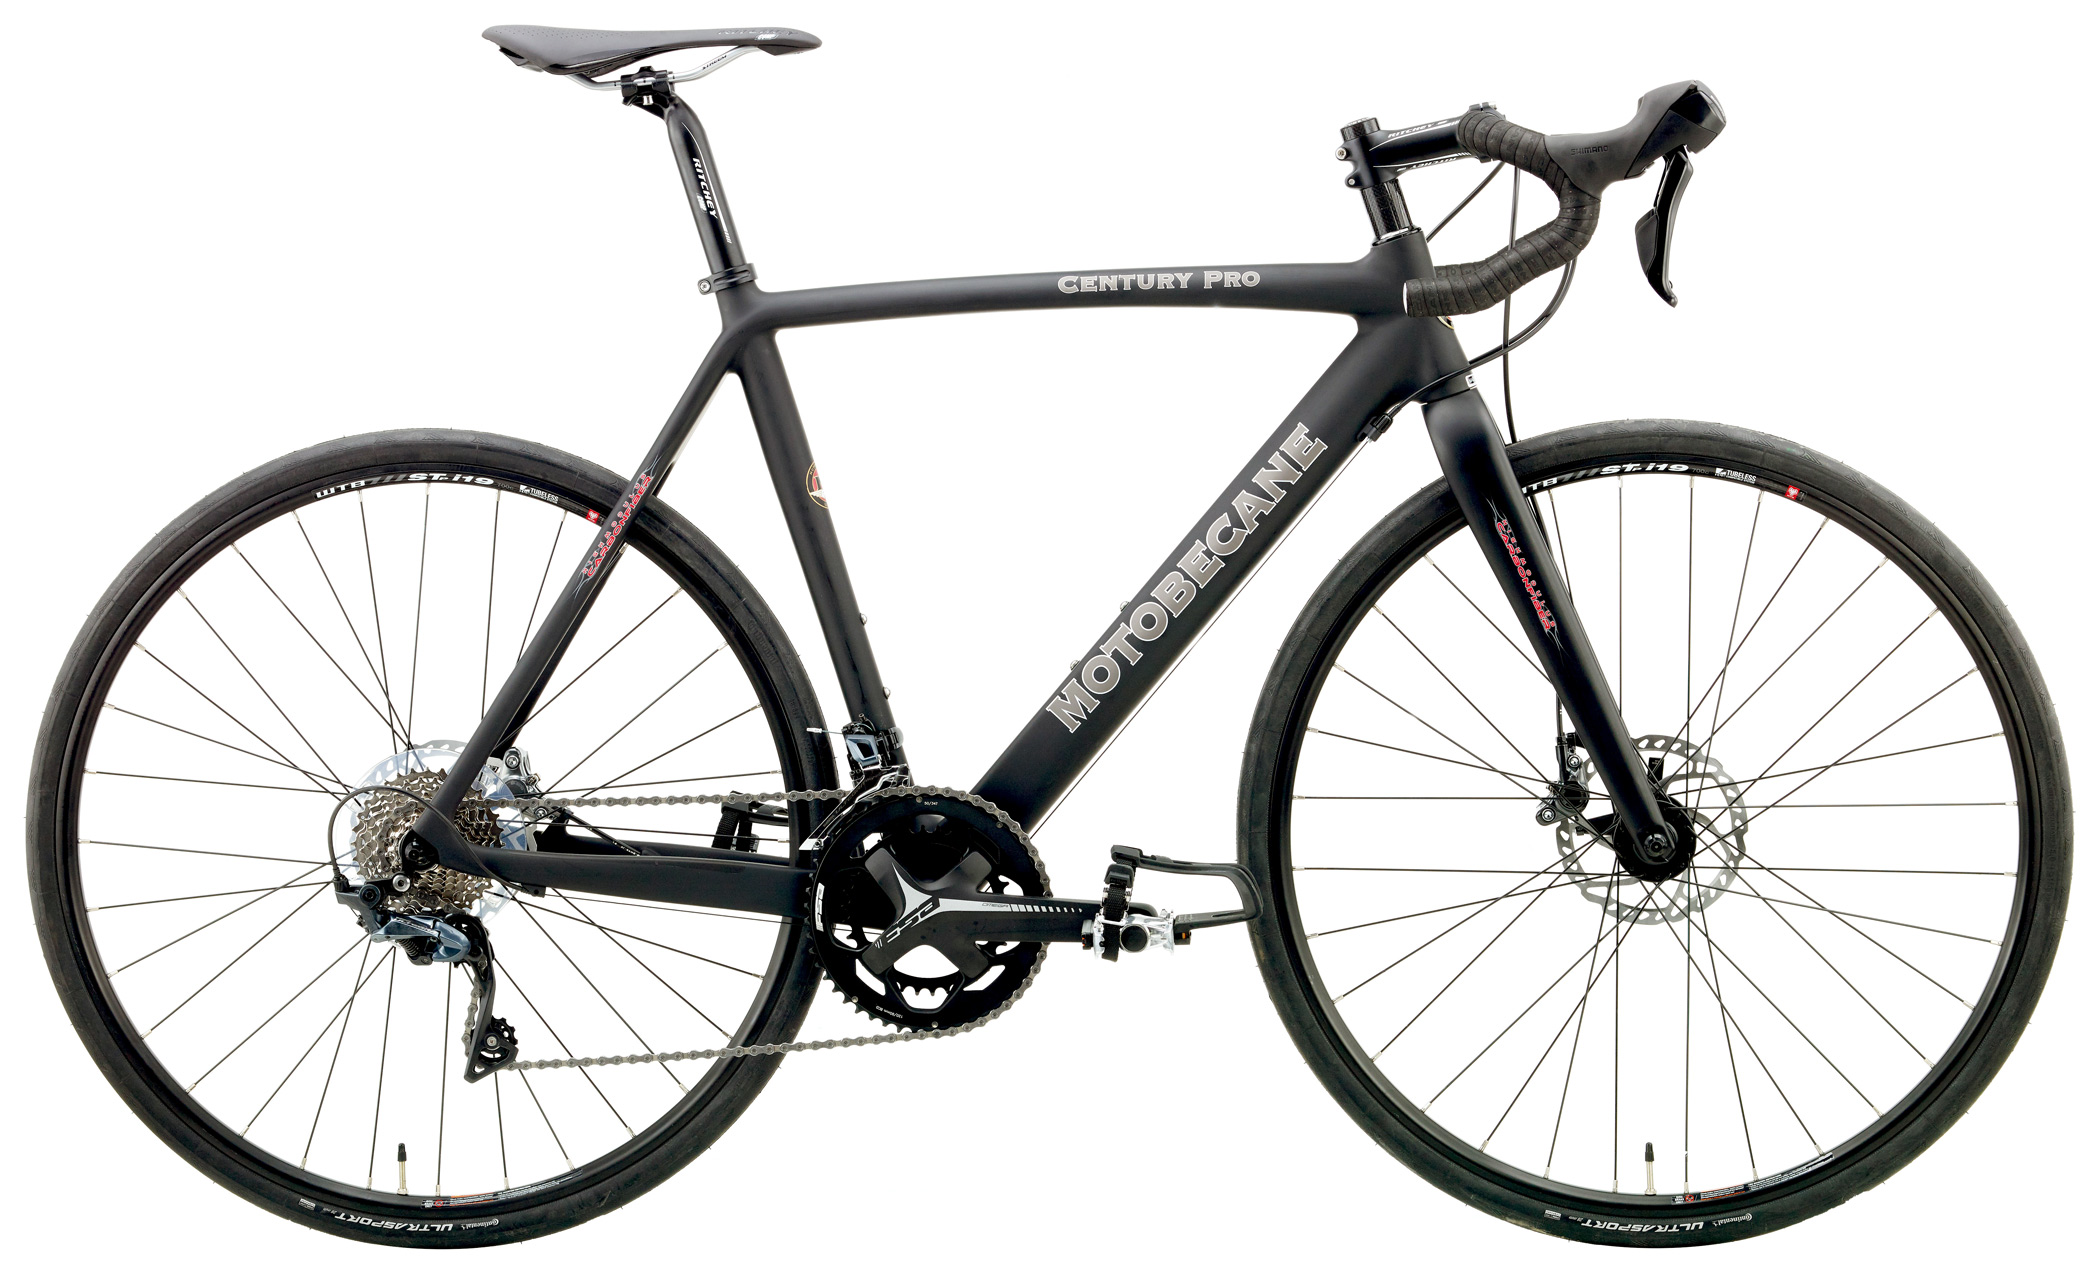 Bikes 2019 Motobecane Century Pro Disc Brake Road Bike Shimano 8000 Equipped Image